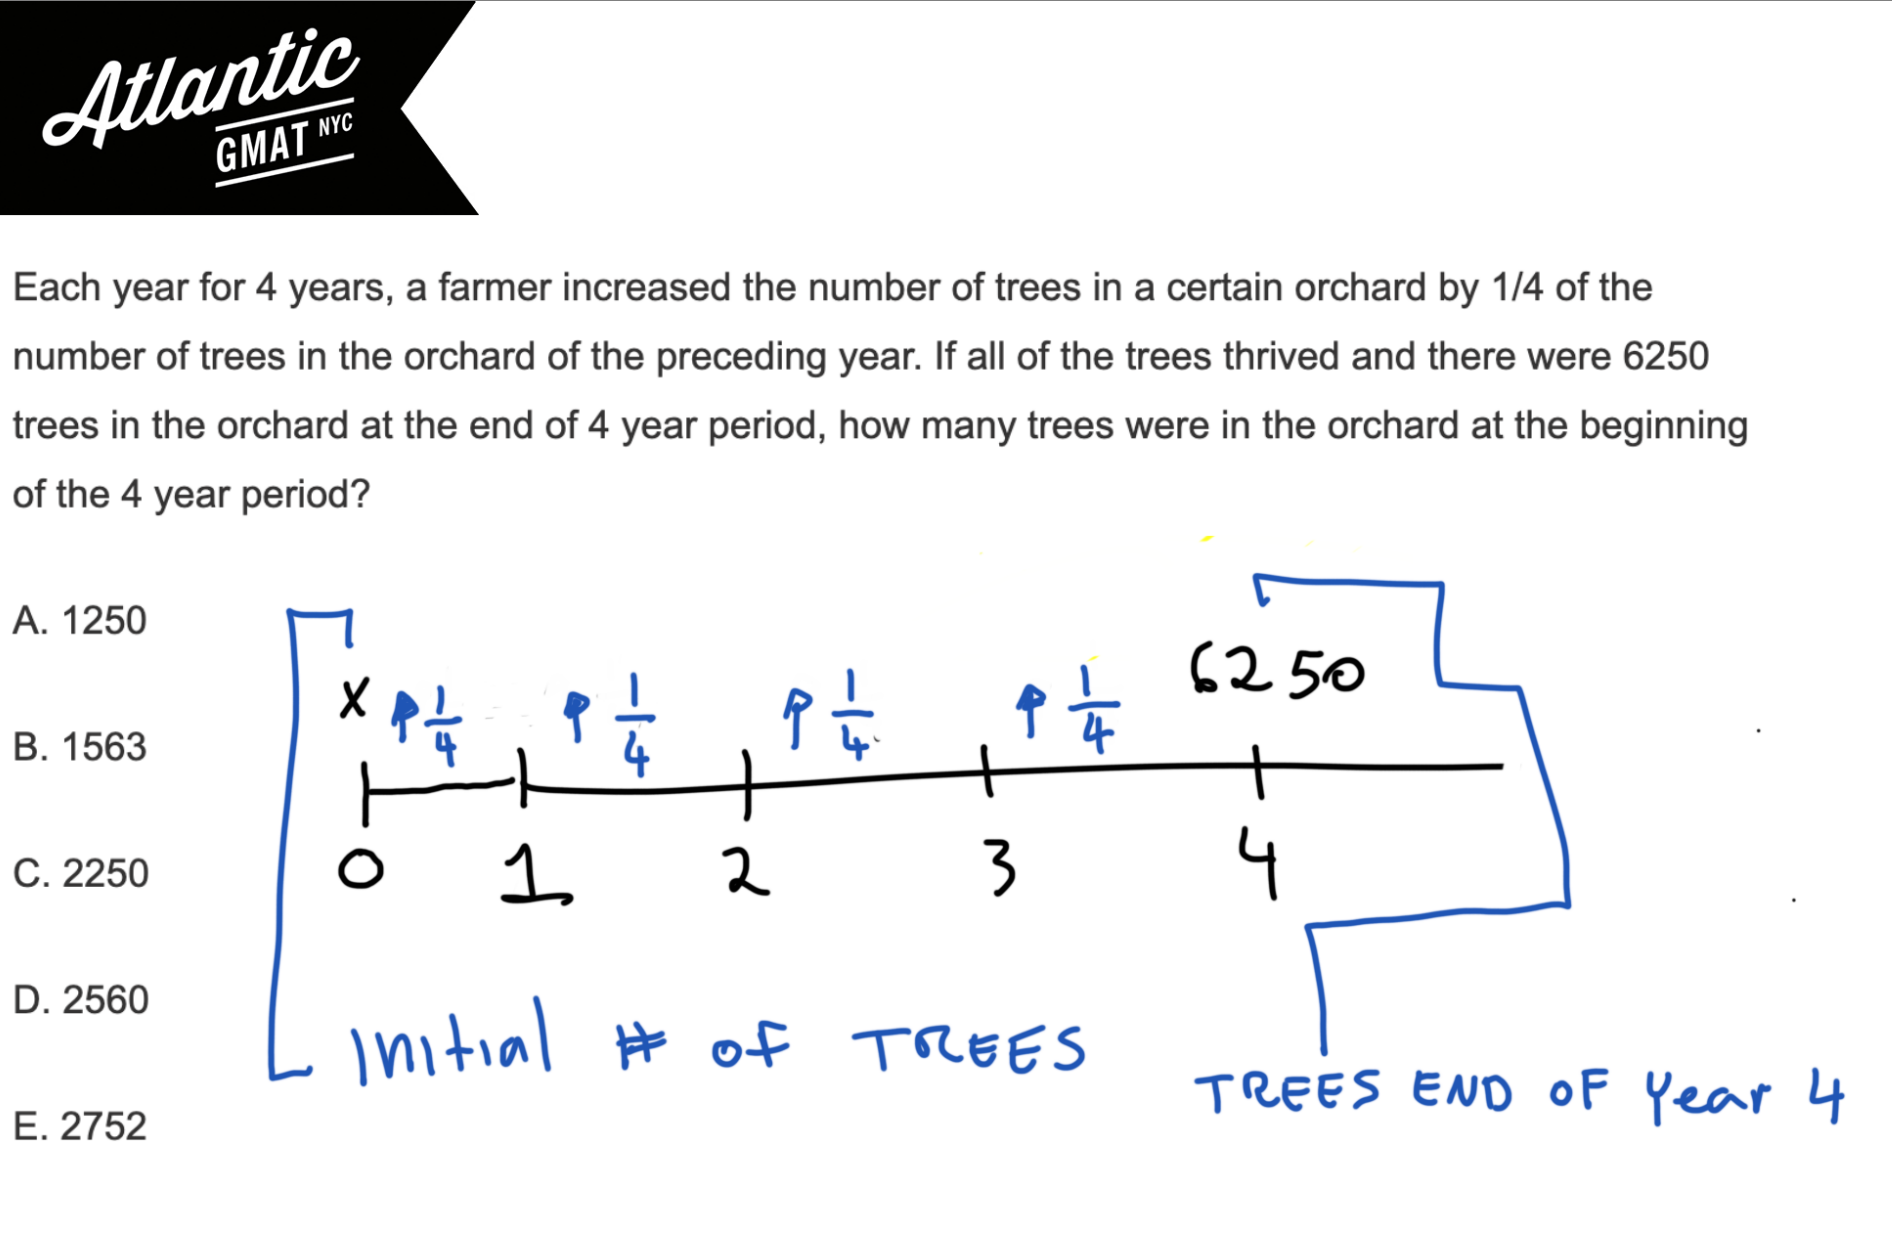 Each year for 4 years, a farmer increased the number of trees in a certain orchard GMAT Explanation Diagram